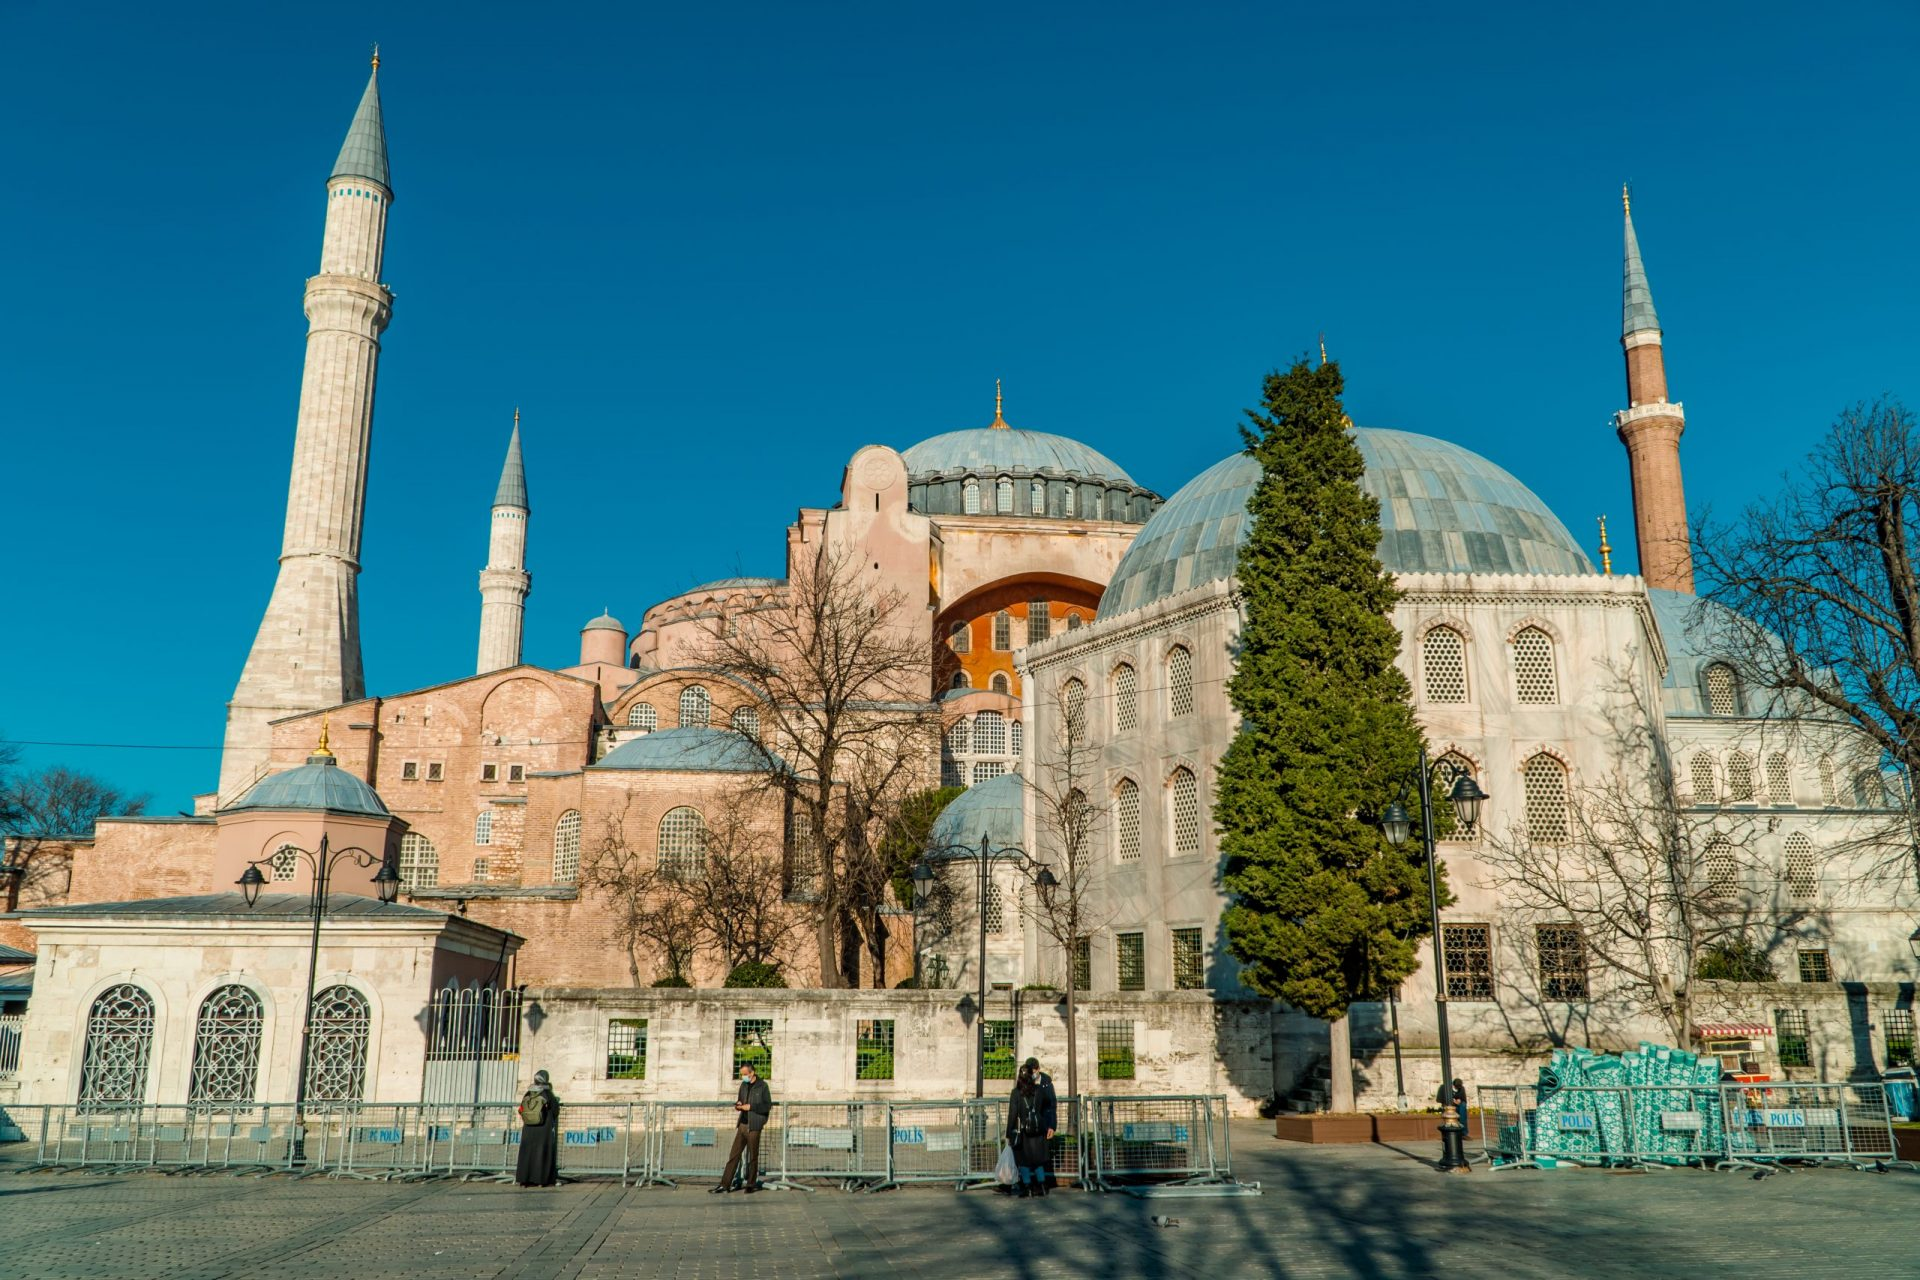 The Ultimate Guide to Turkey for Digital Nomads - The Hagia Sophia in Istanbul